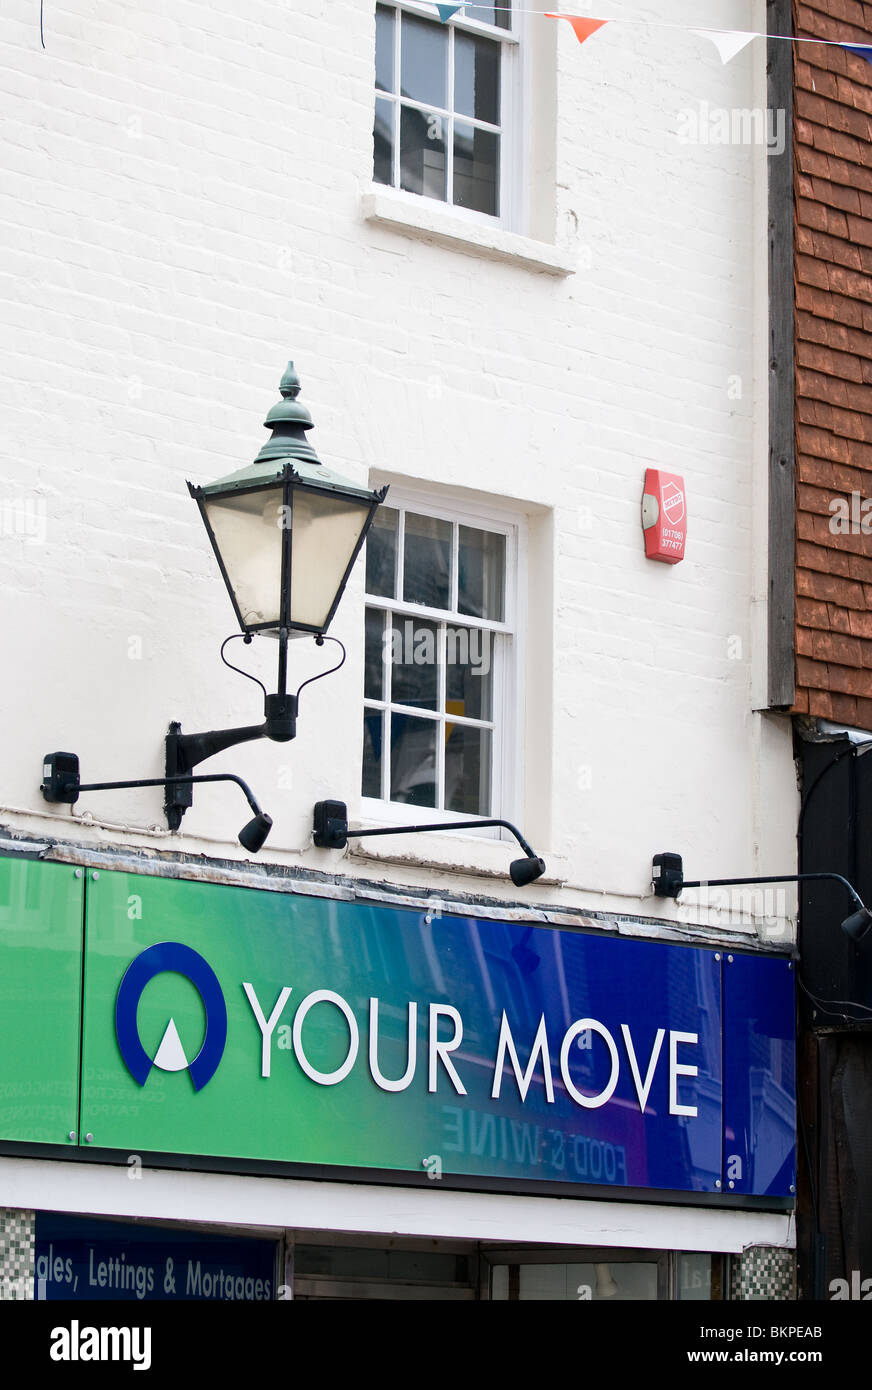 Your Move estate agent sign.  Photo by Gordon Scammell - Stock Image